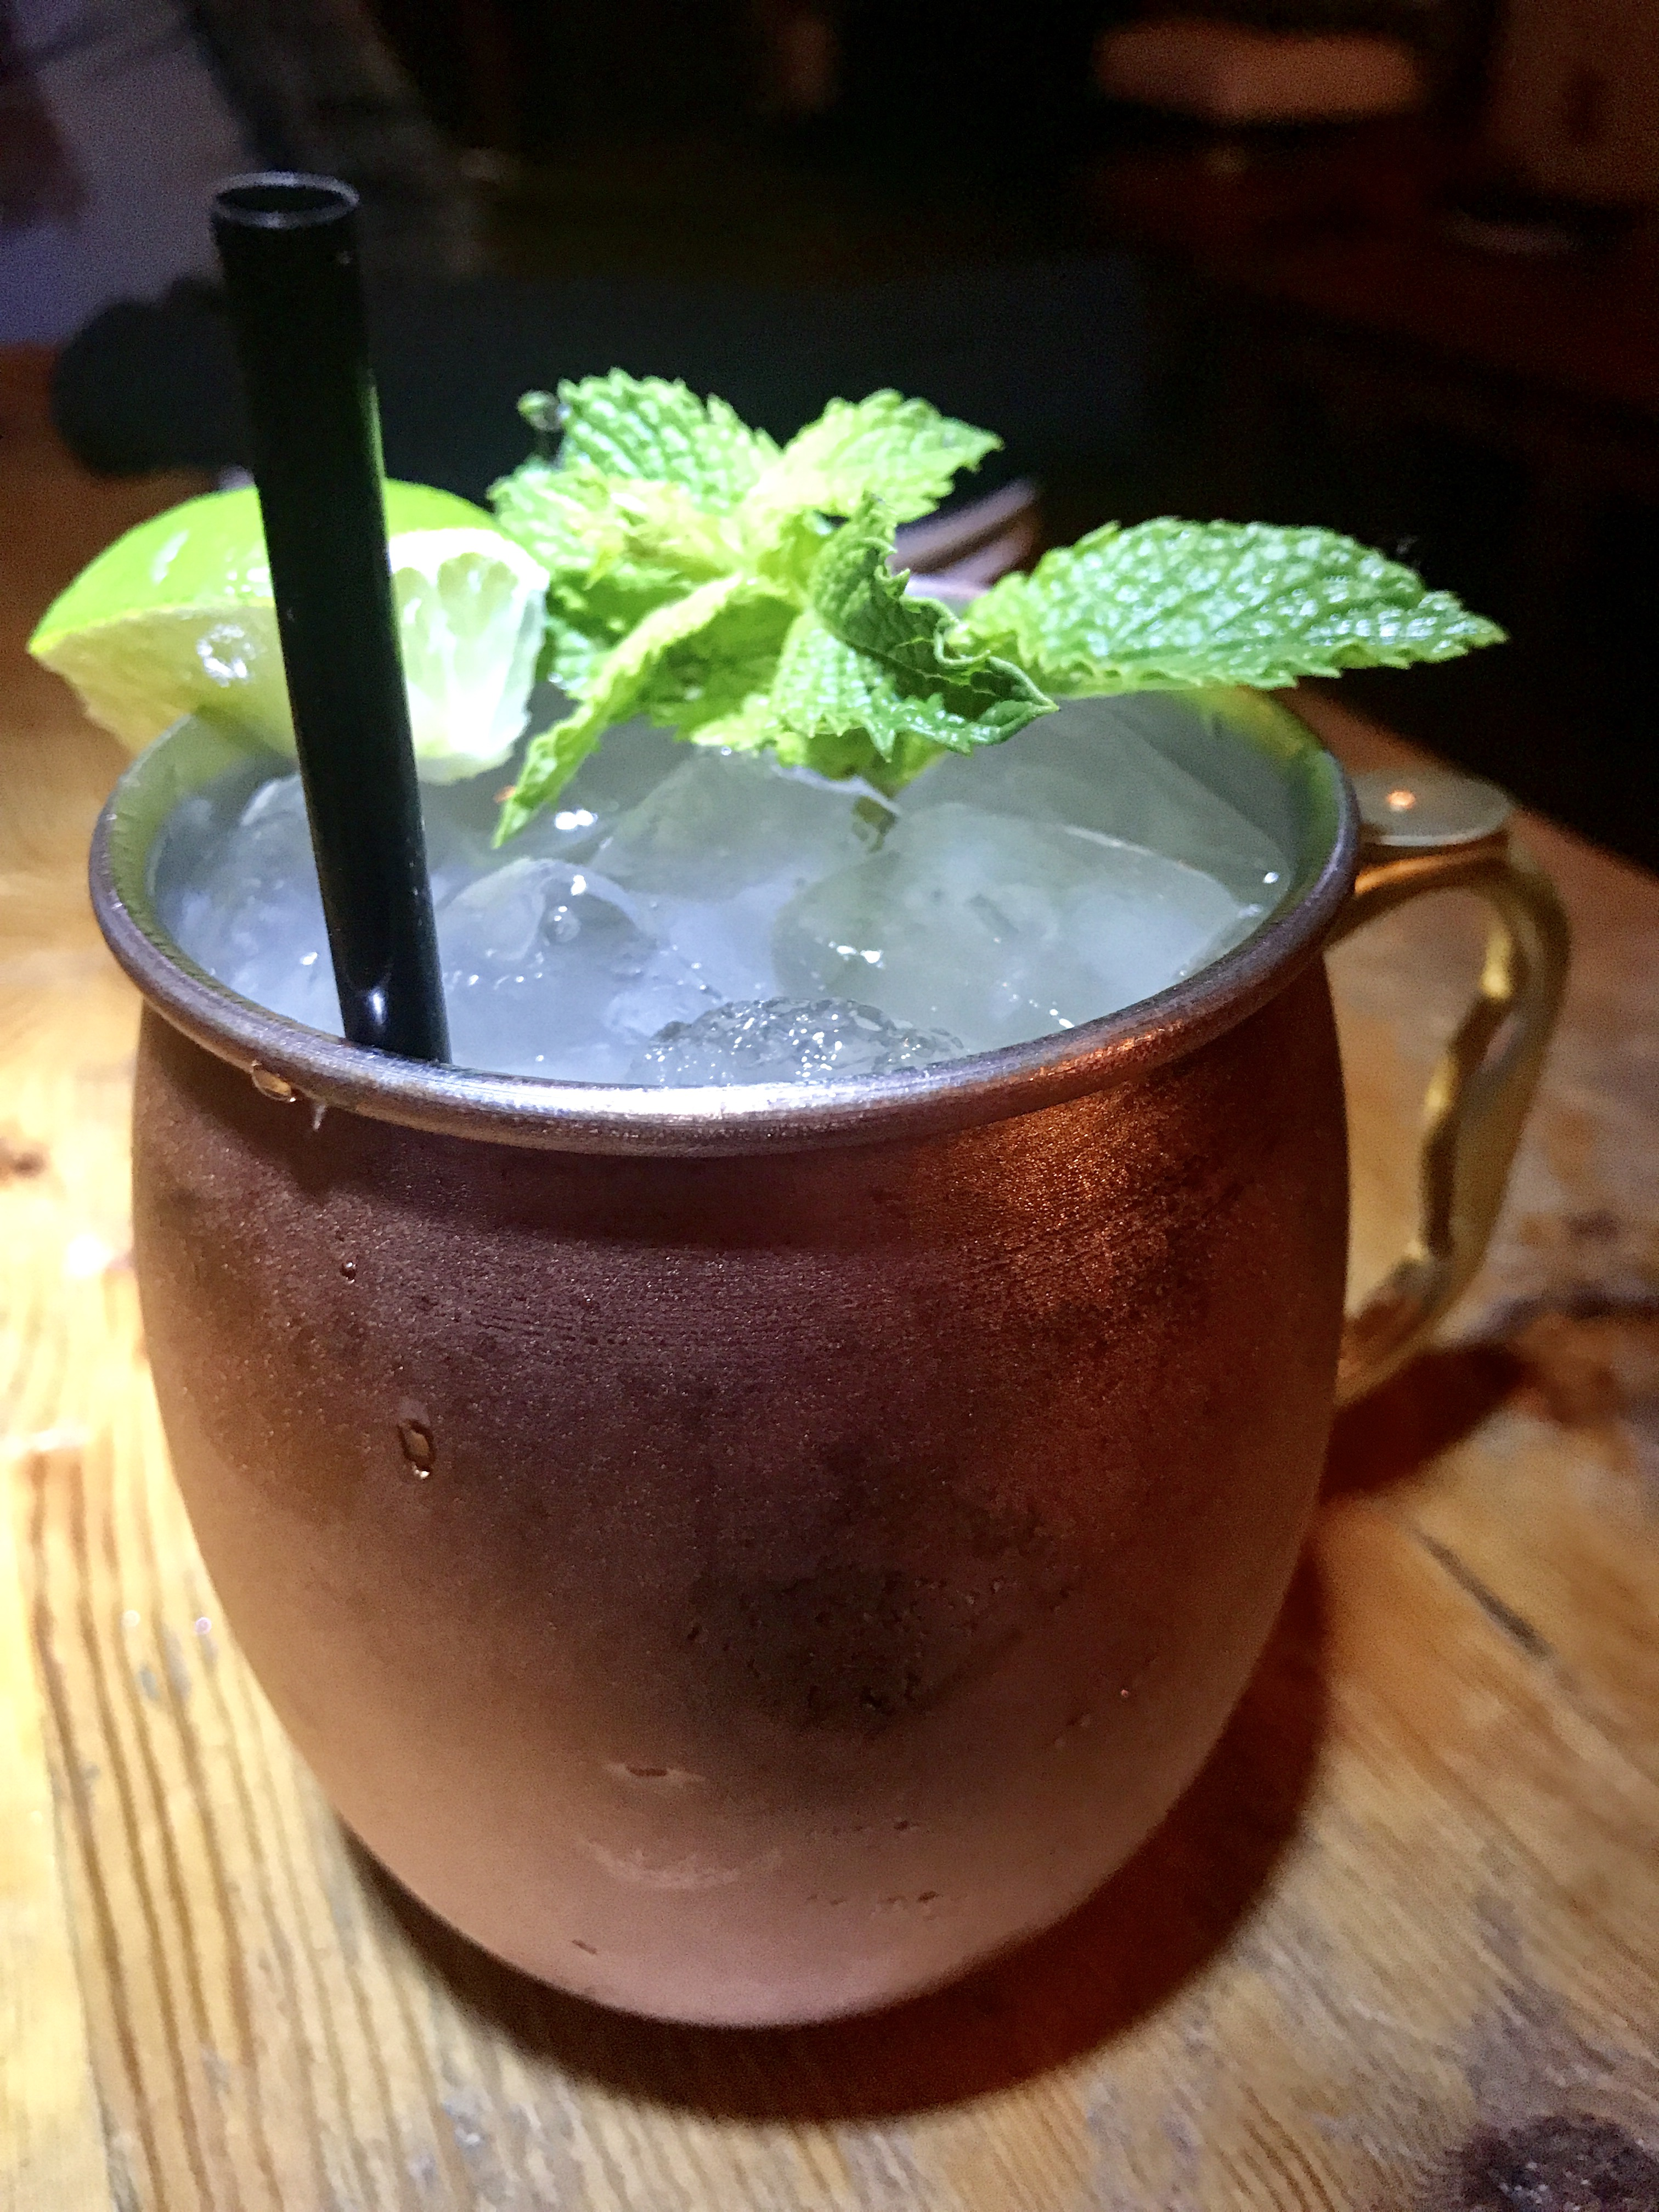 The Moscow Mule at D'Vine Lounge Bar. Made with hand crafted ginger beer